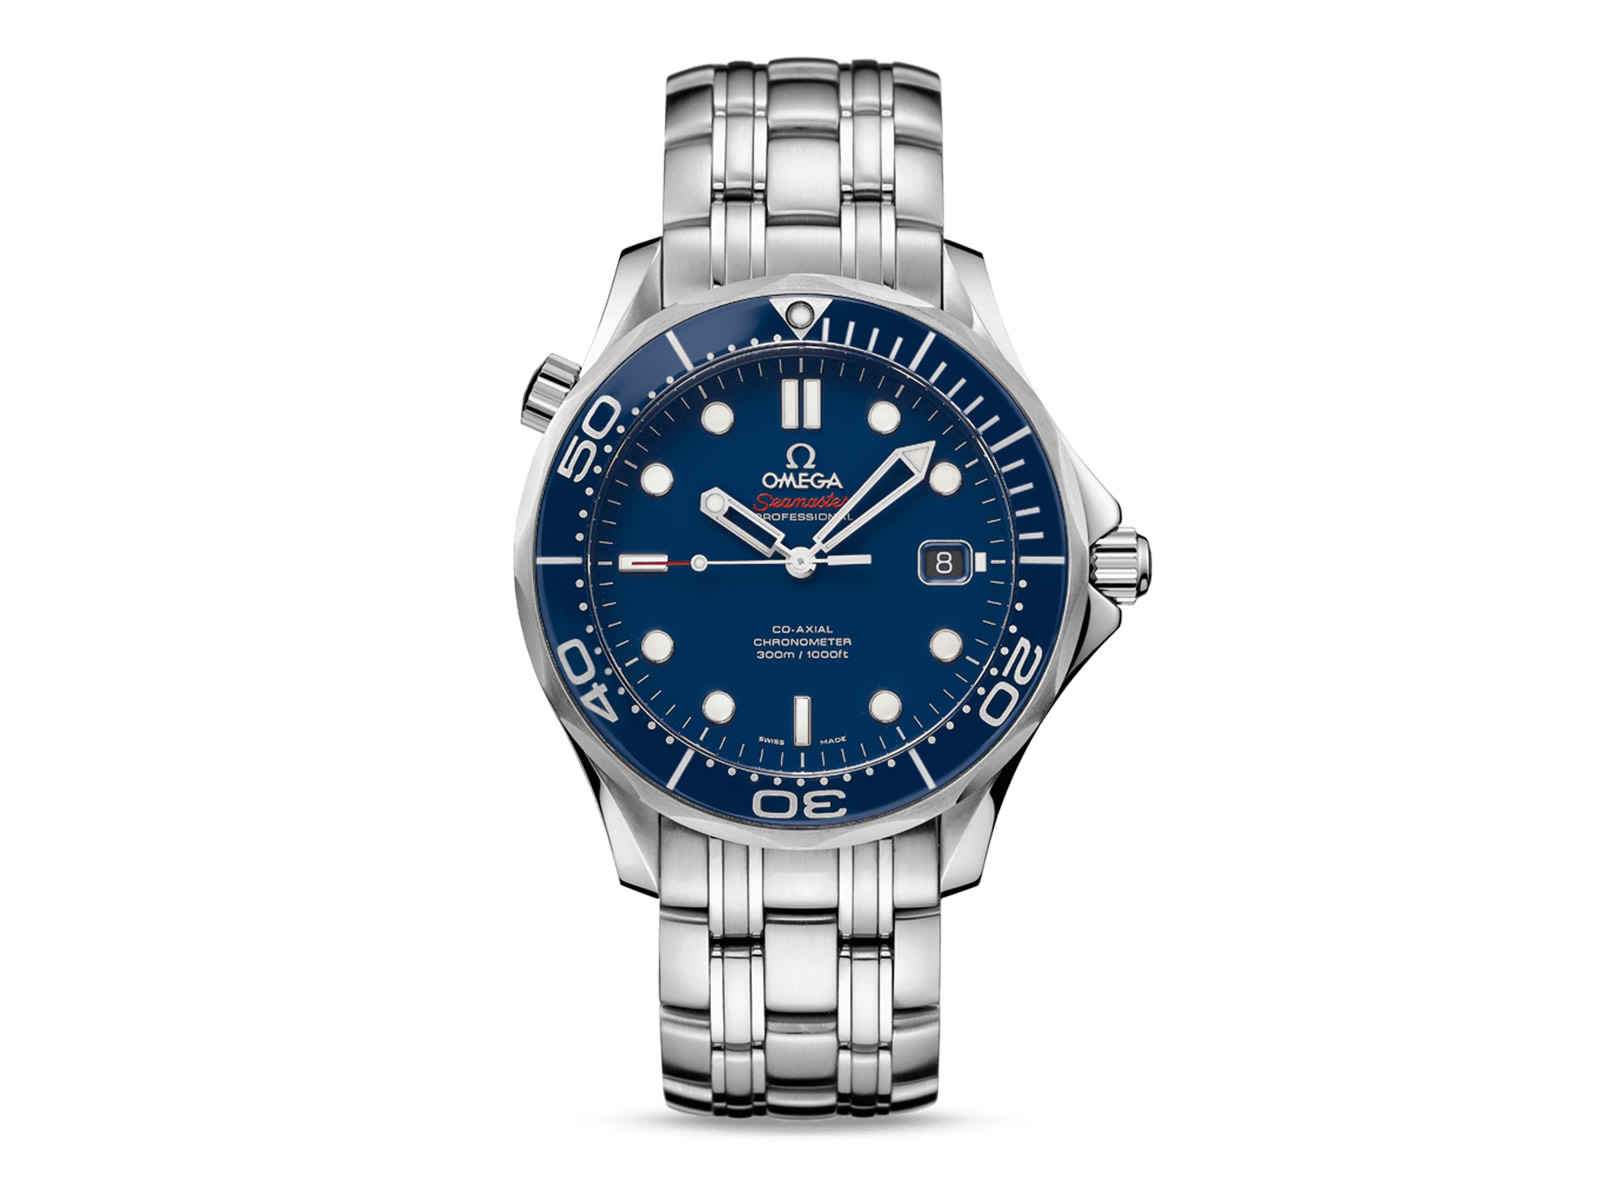 212-30-41-20-03-001-omega-seamaster-diver-300m-co-axial-41-mm-.jpg